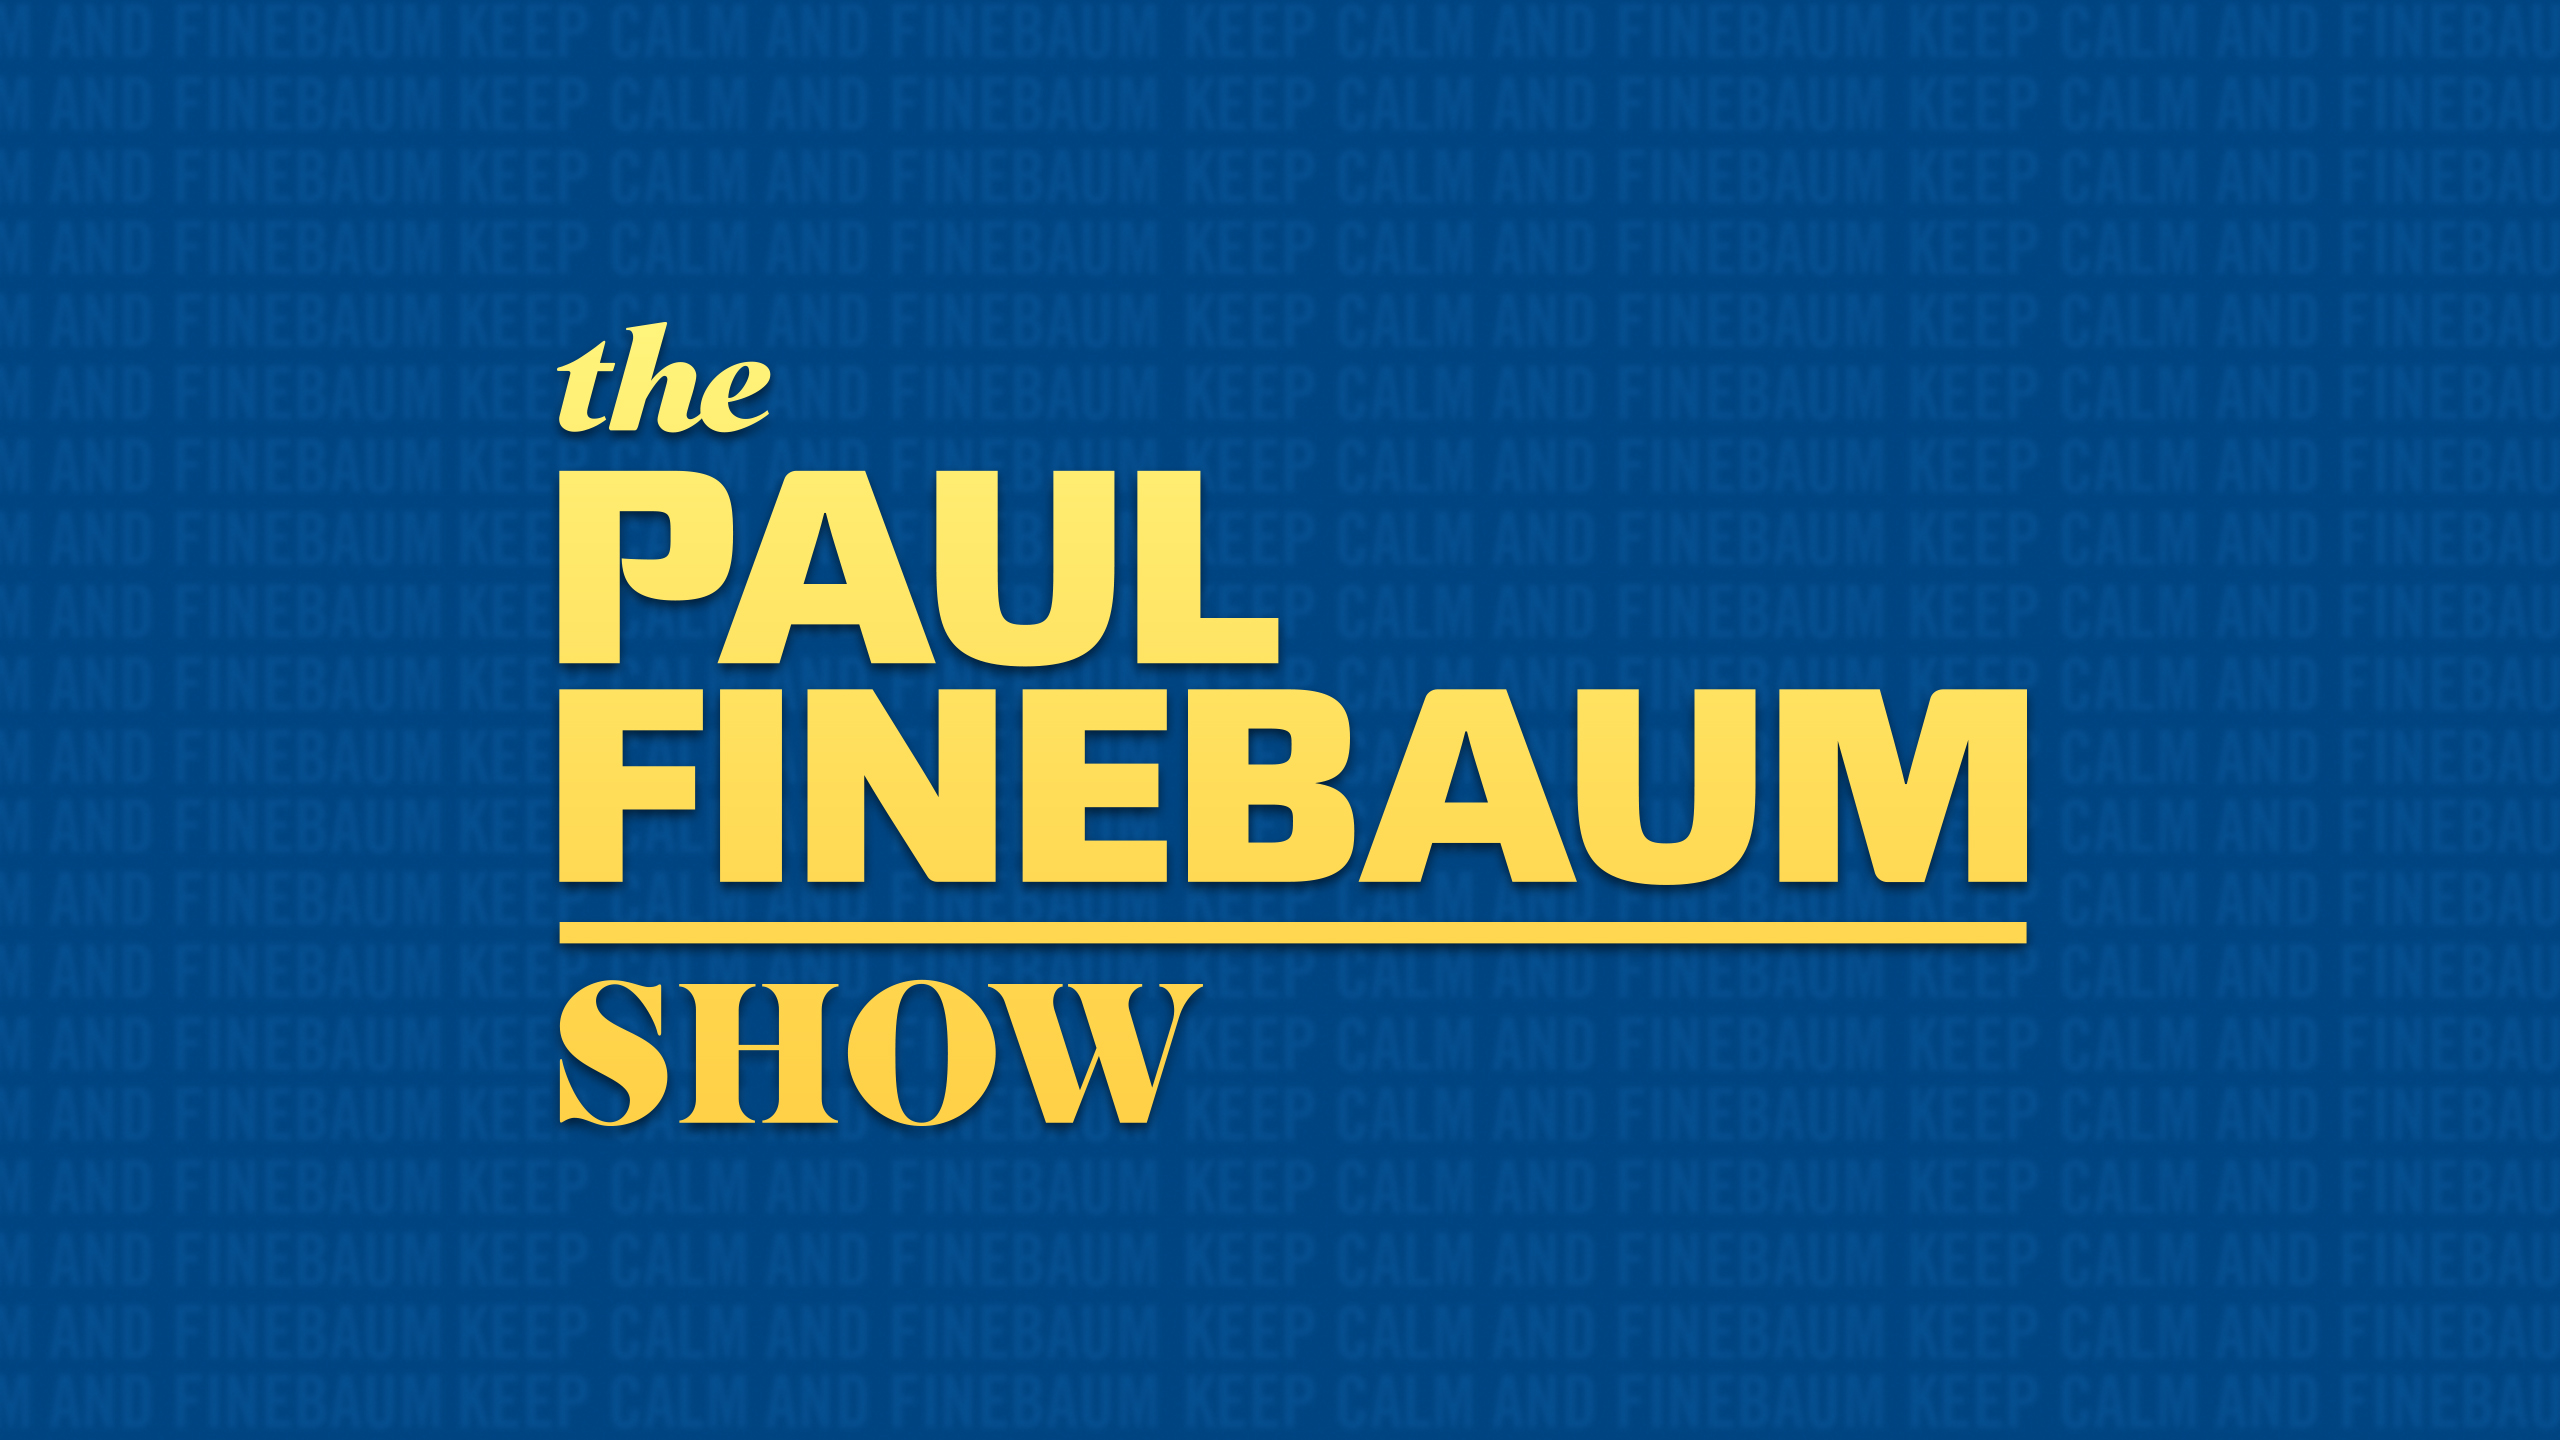 Thu, 2/14 - The Paul Finebaum Show